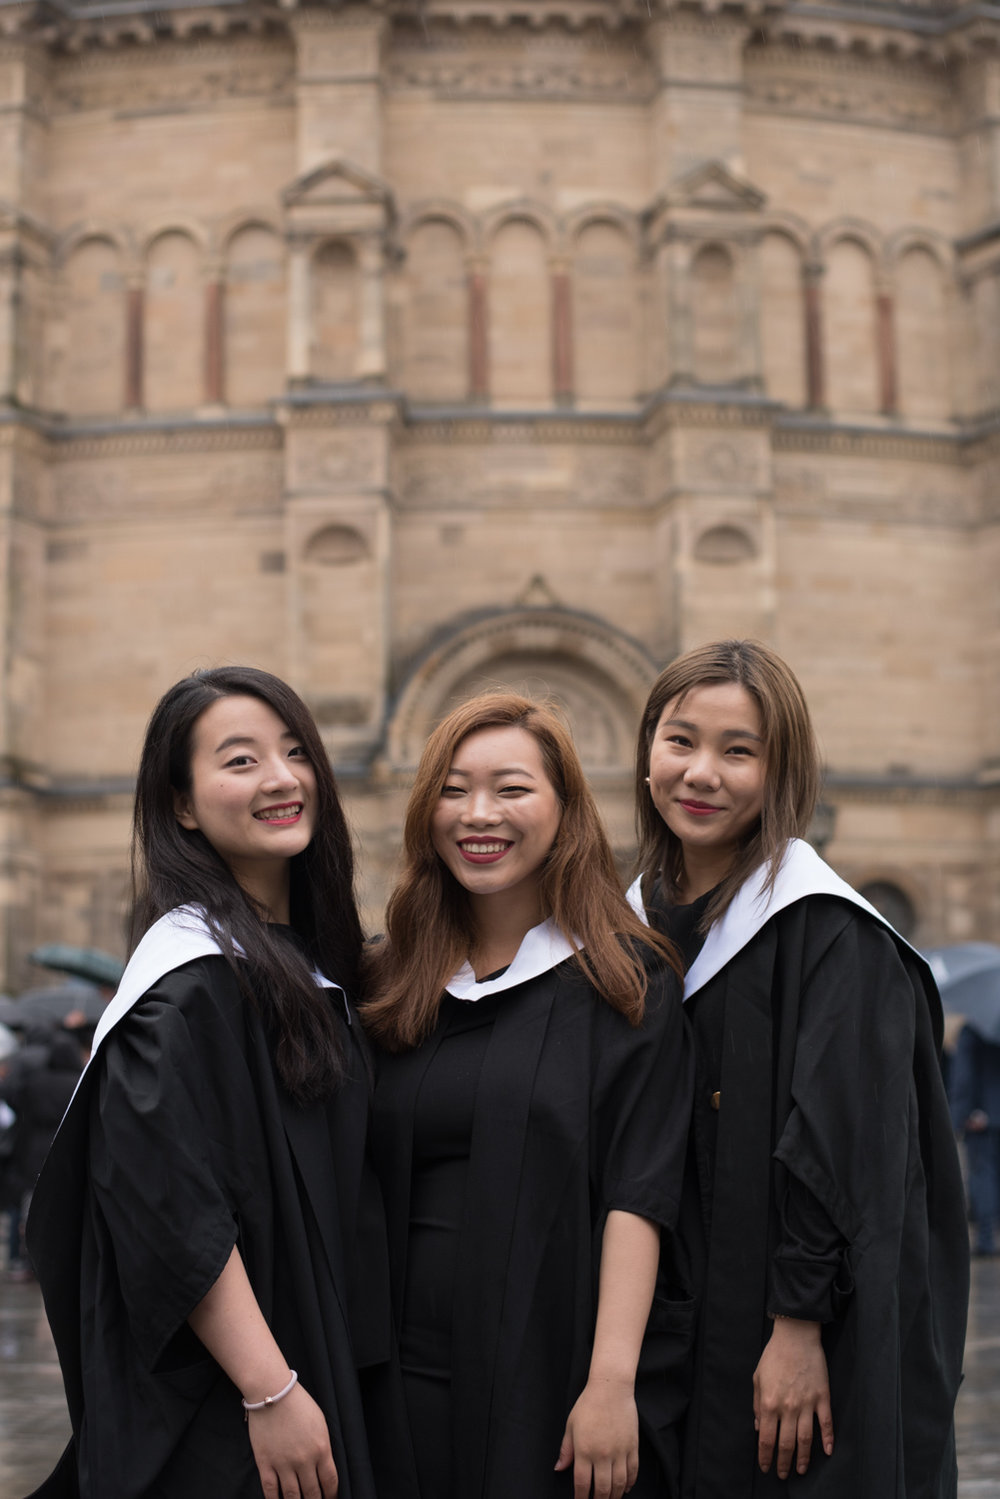 Graduation Photography - McEwan Hall, Edinburgh